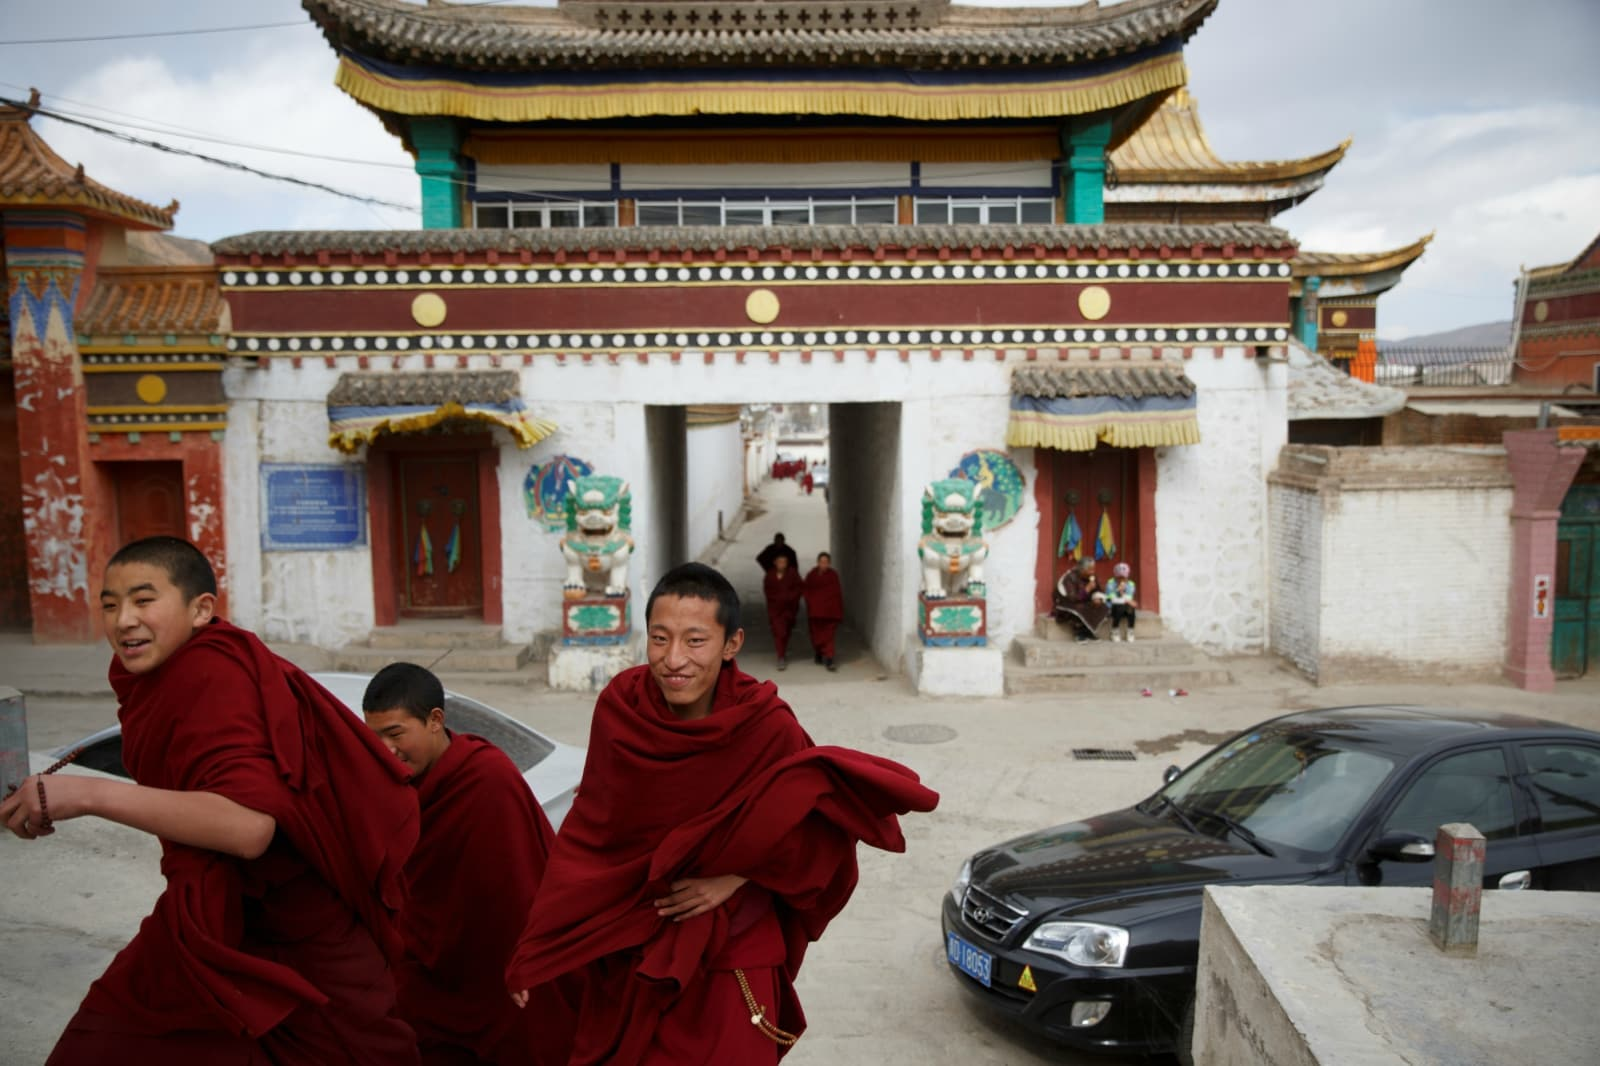 Buddhist monks leave Rongwo Monastery in the largely ethnic Tibetan town of Rebkong, Qinghai province, China March 9, 2019. REUTERS/Thomas Peter